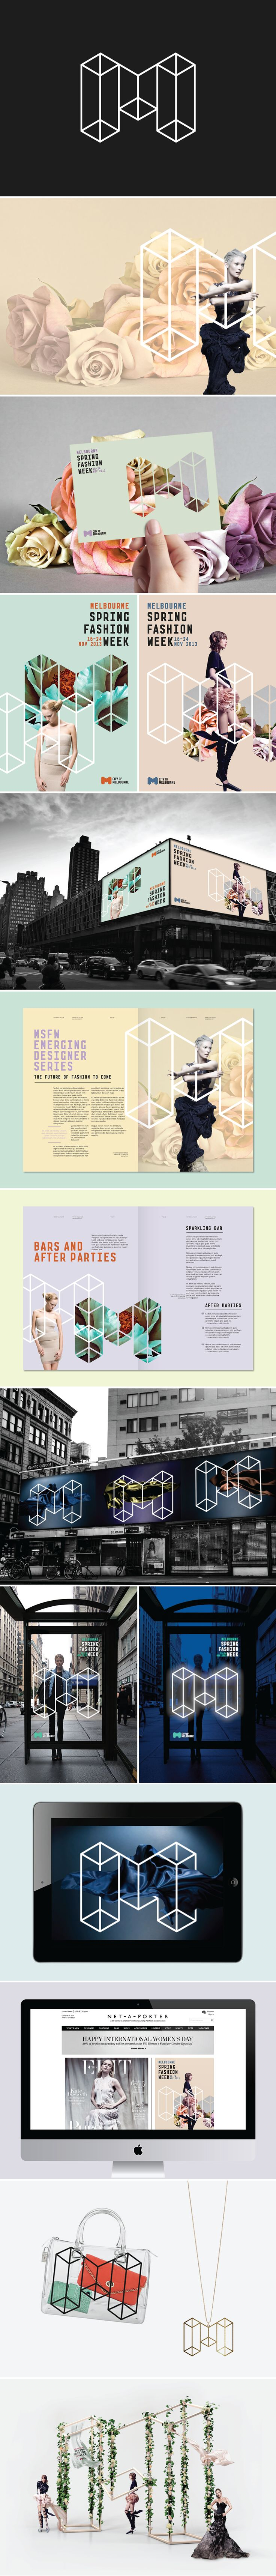 Melbourne Spring Fashion Week Concept & Guidelines on Behance